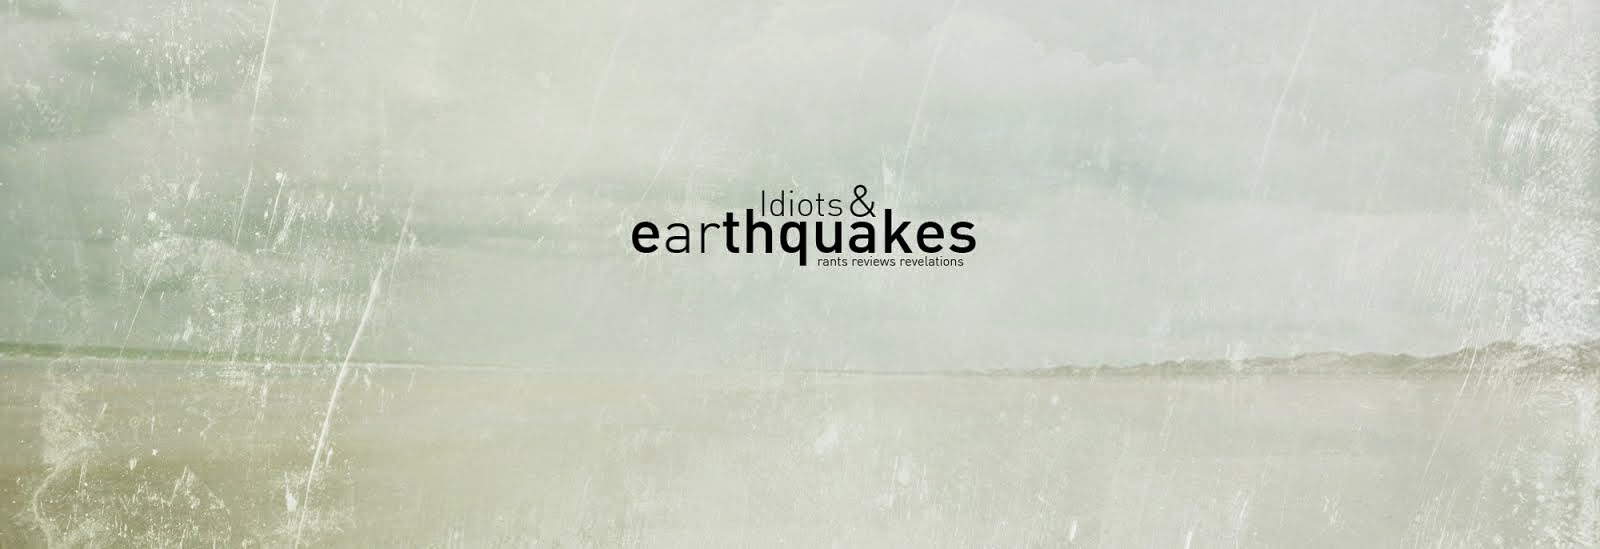 <center>Idiots &amp; Earthquakes - A Writer&#39;s Blog</center>